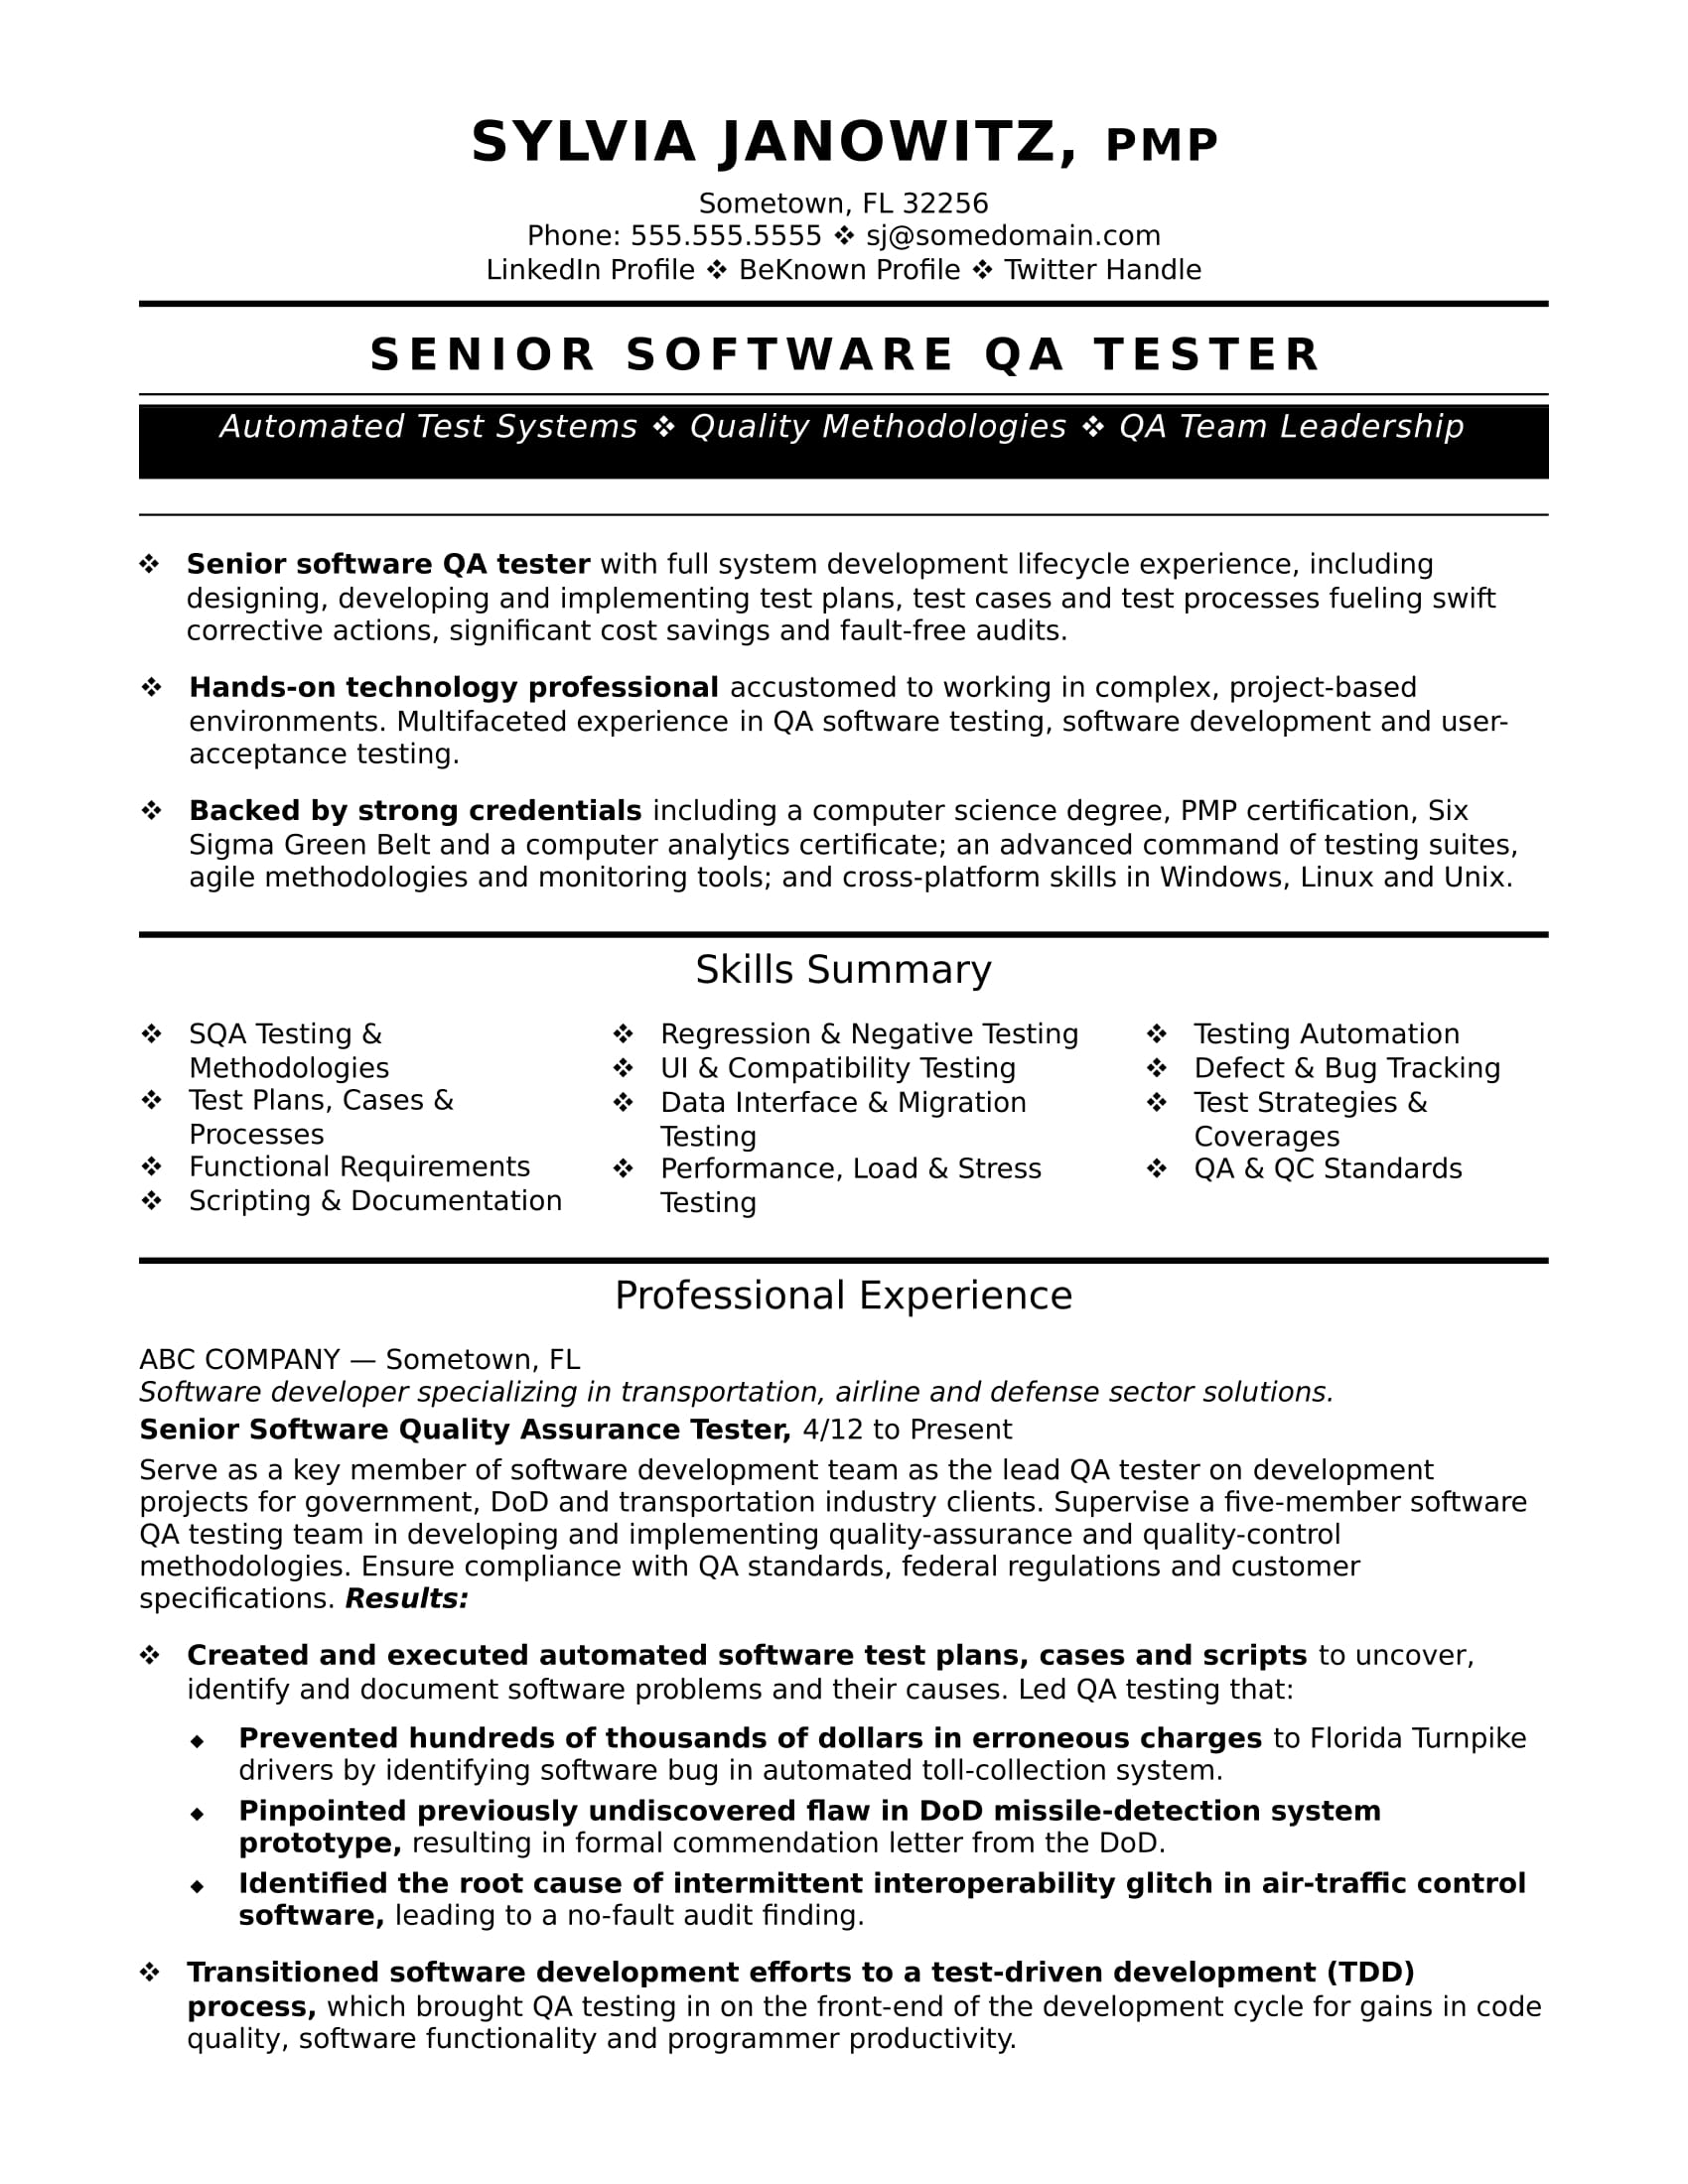 experienced qa software tester resume sample monster selenium for year experience entry Resume Selenium Resume For 1 Year Experience